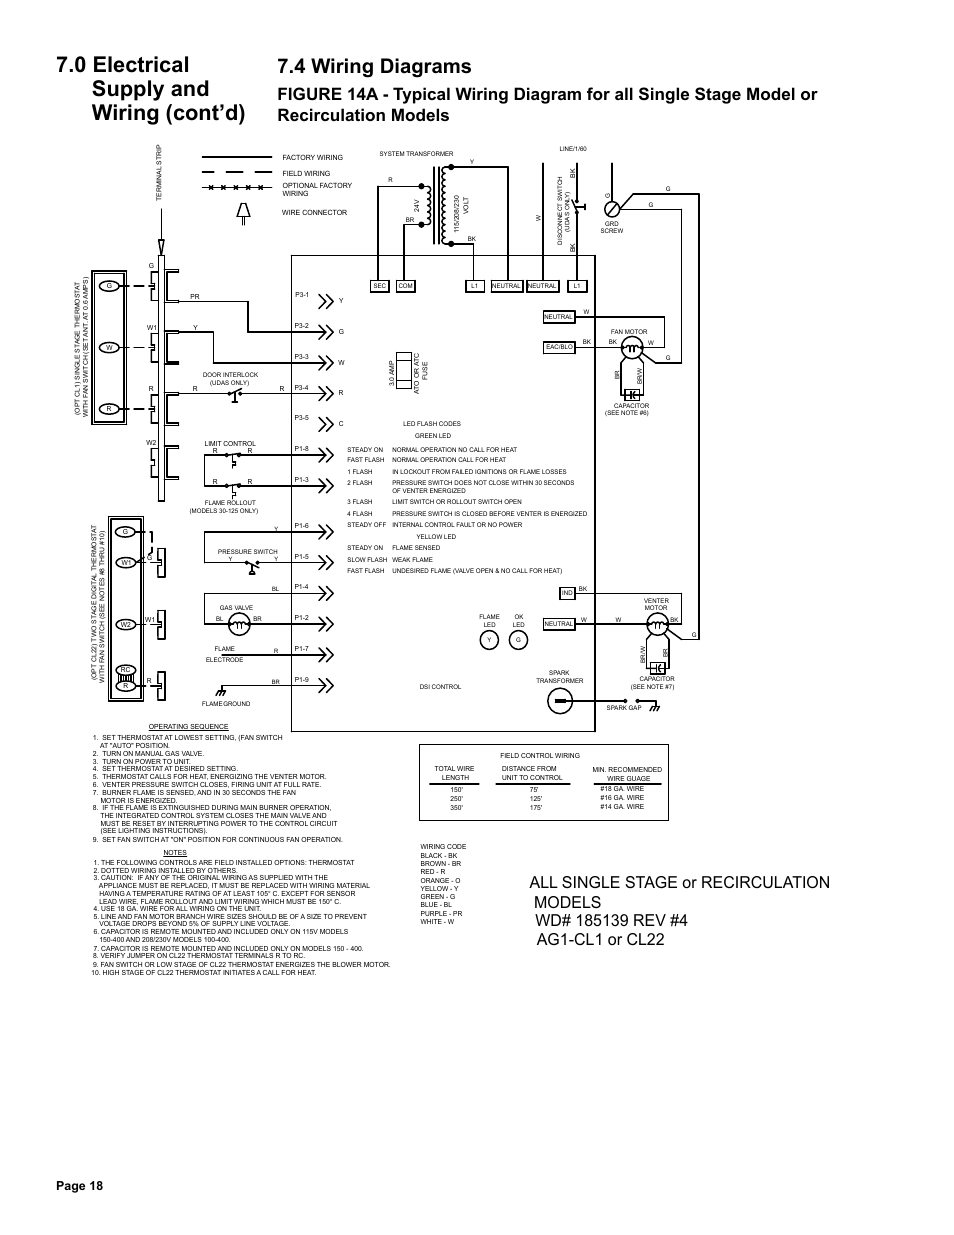 medium resolution of 4 wiring diagrams 0 electrical supply and wiring cont d page 18 reznor udas unit installation manual user manual page 18 40